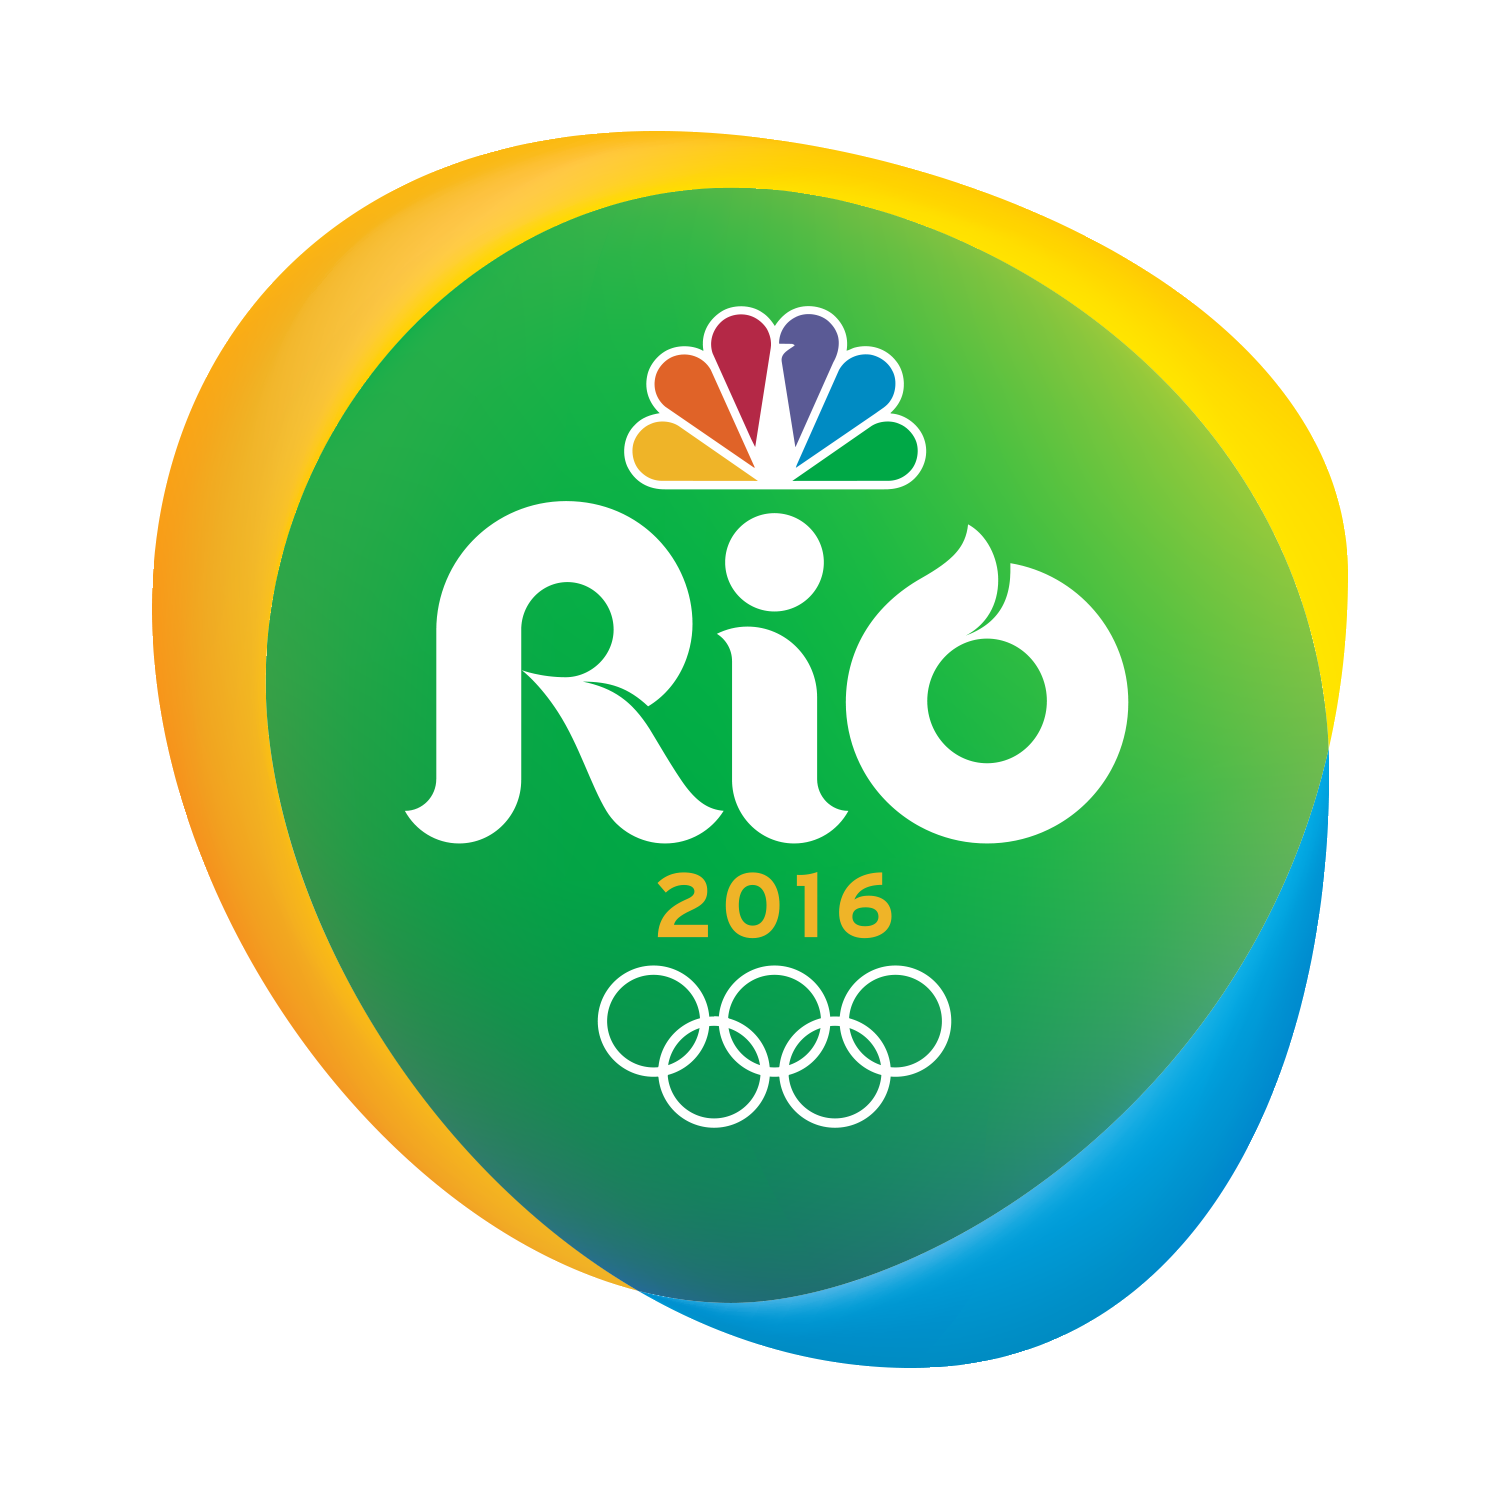 Nbc olympics to provide. Rio 2016 logo png picture royalty free library